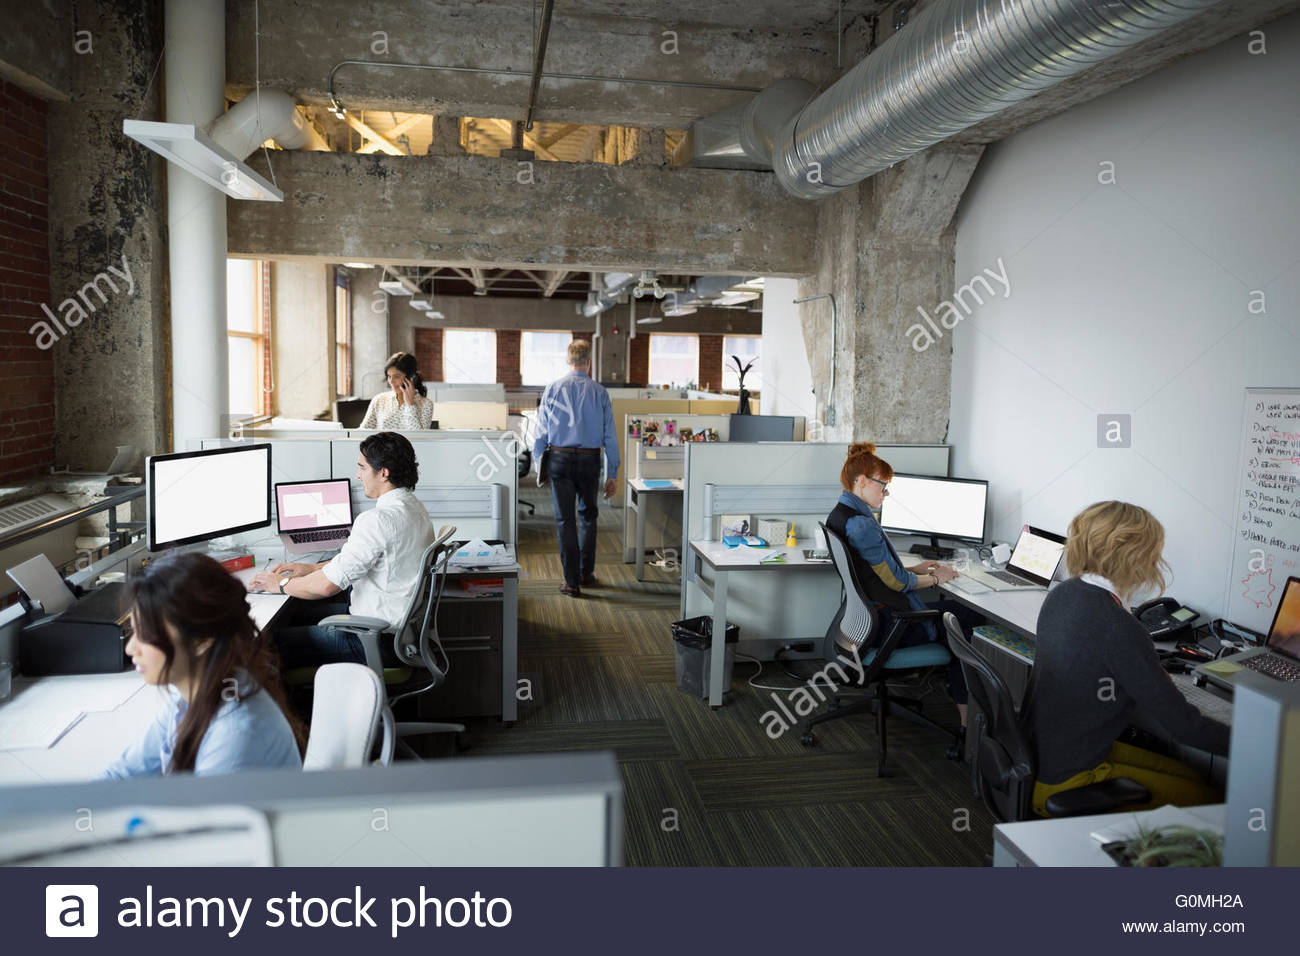 Business people working at desks open plan office - Stock Image